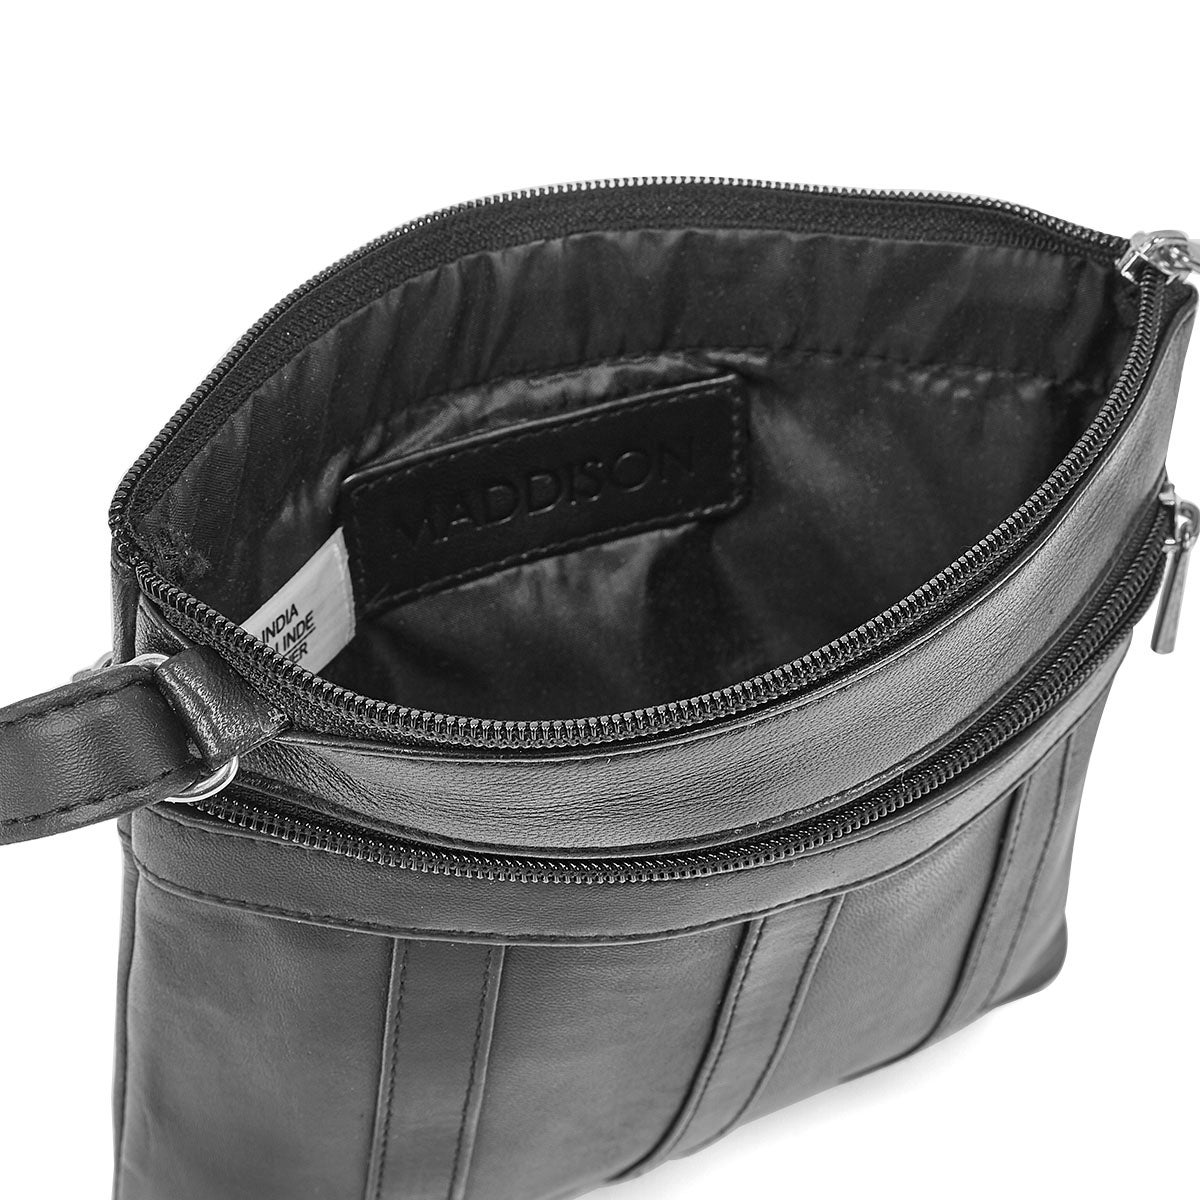 Lds blk sheep leather panelled crossbody